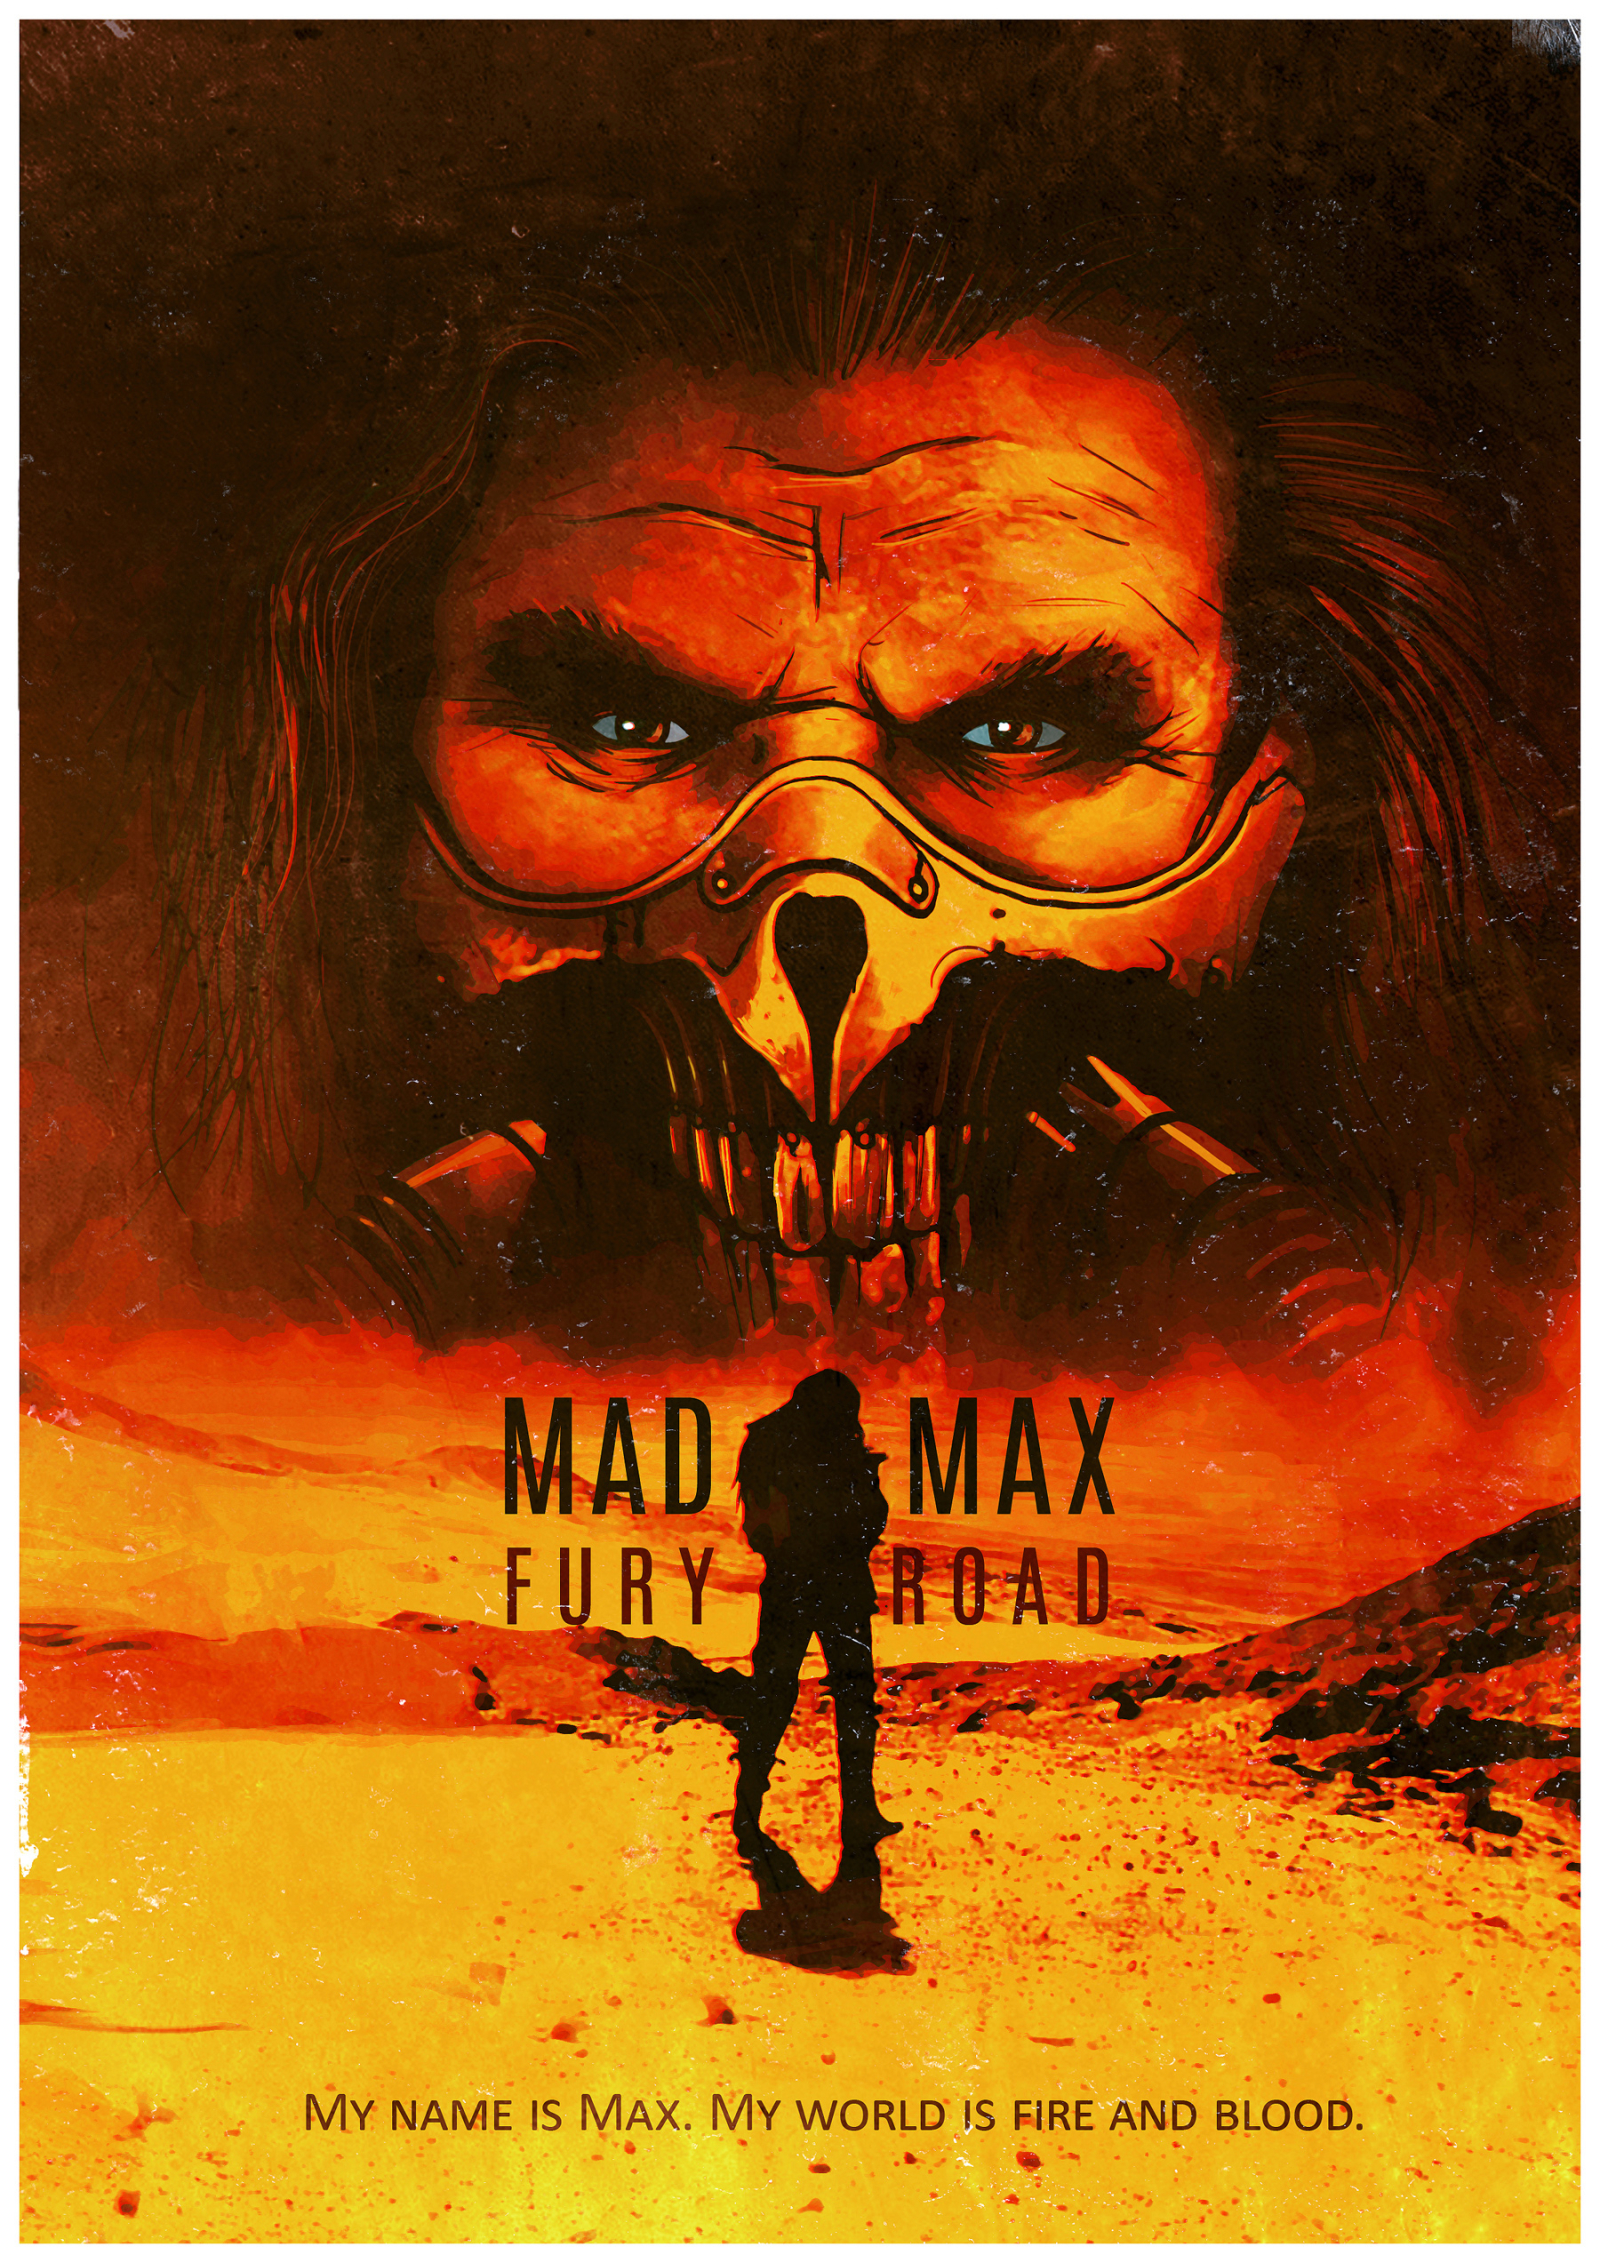 Polster Max Mad Max Fury Road Posters Via Poster Spy